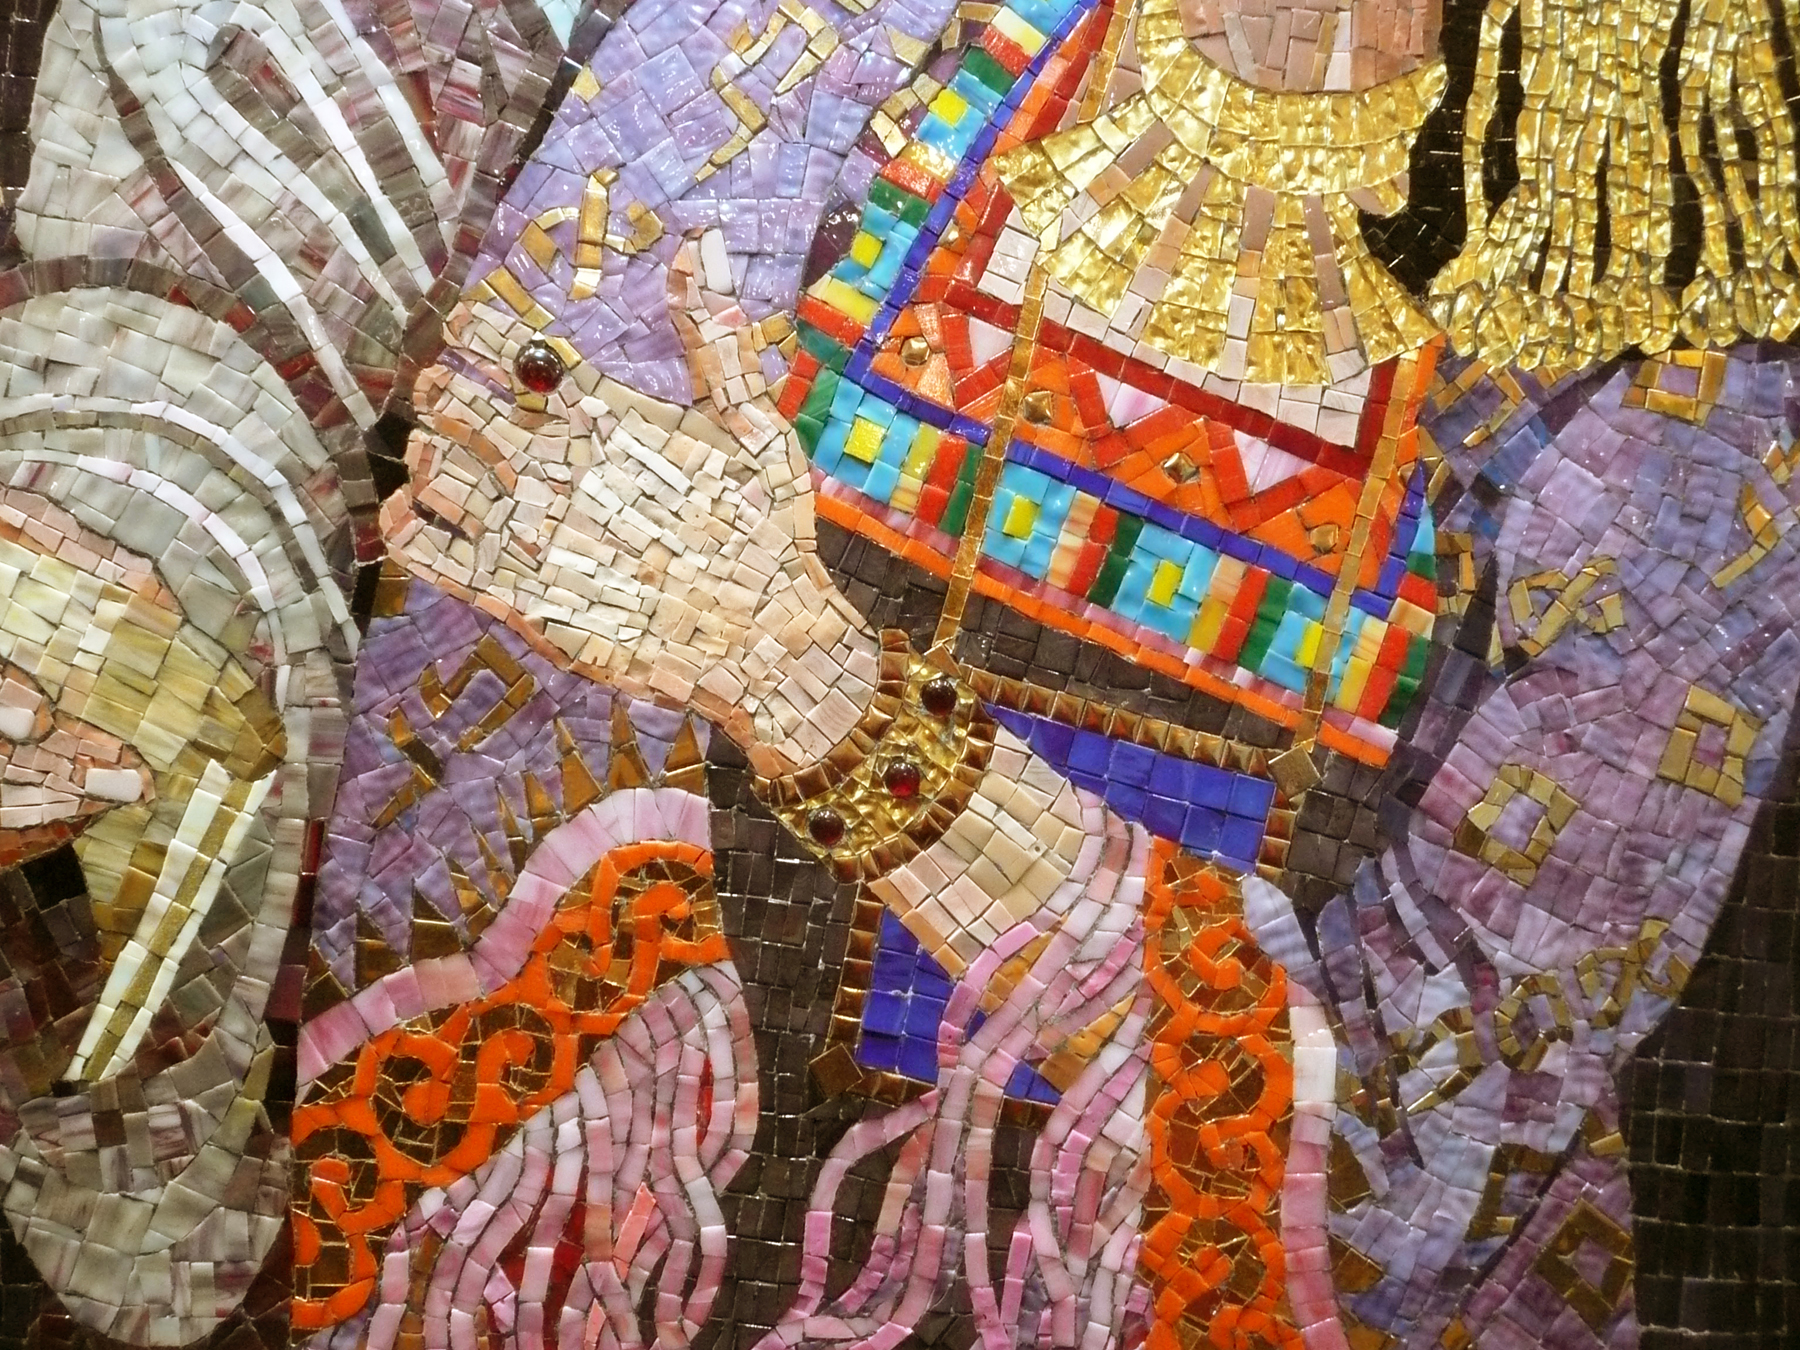 Renowned Canadian artist Lilian Broca's monumental mosaic ...